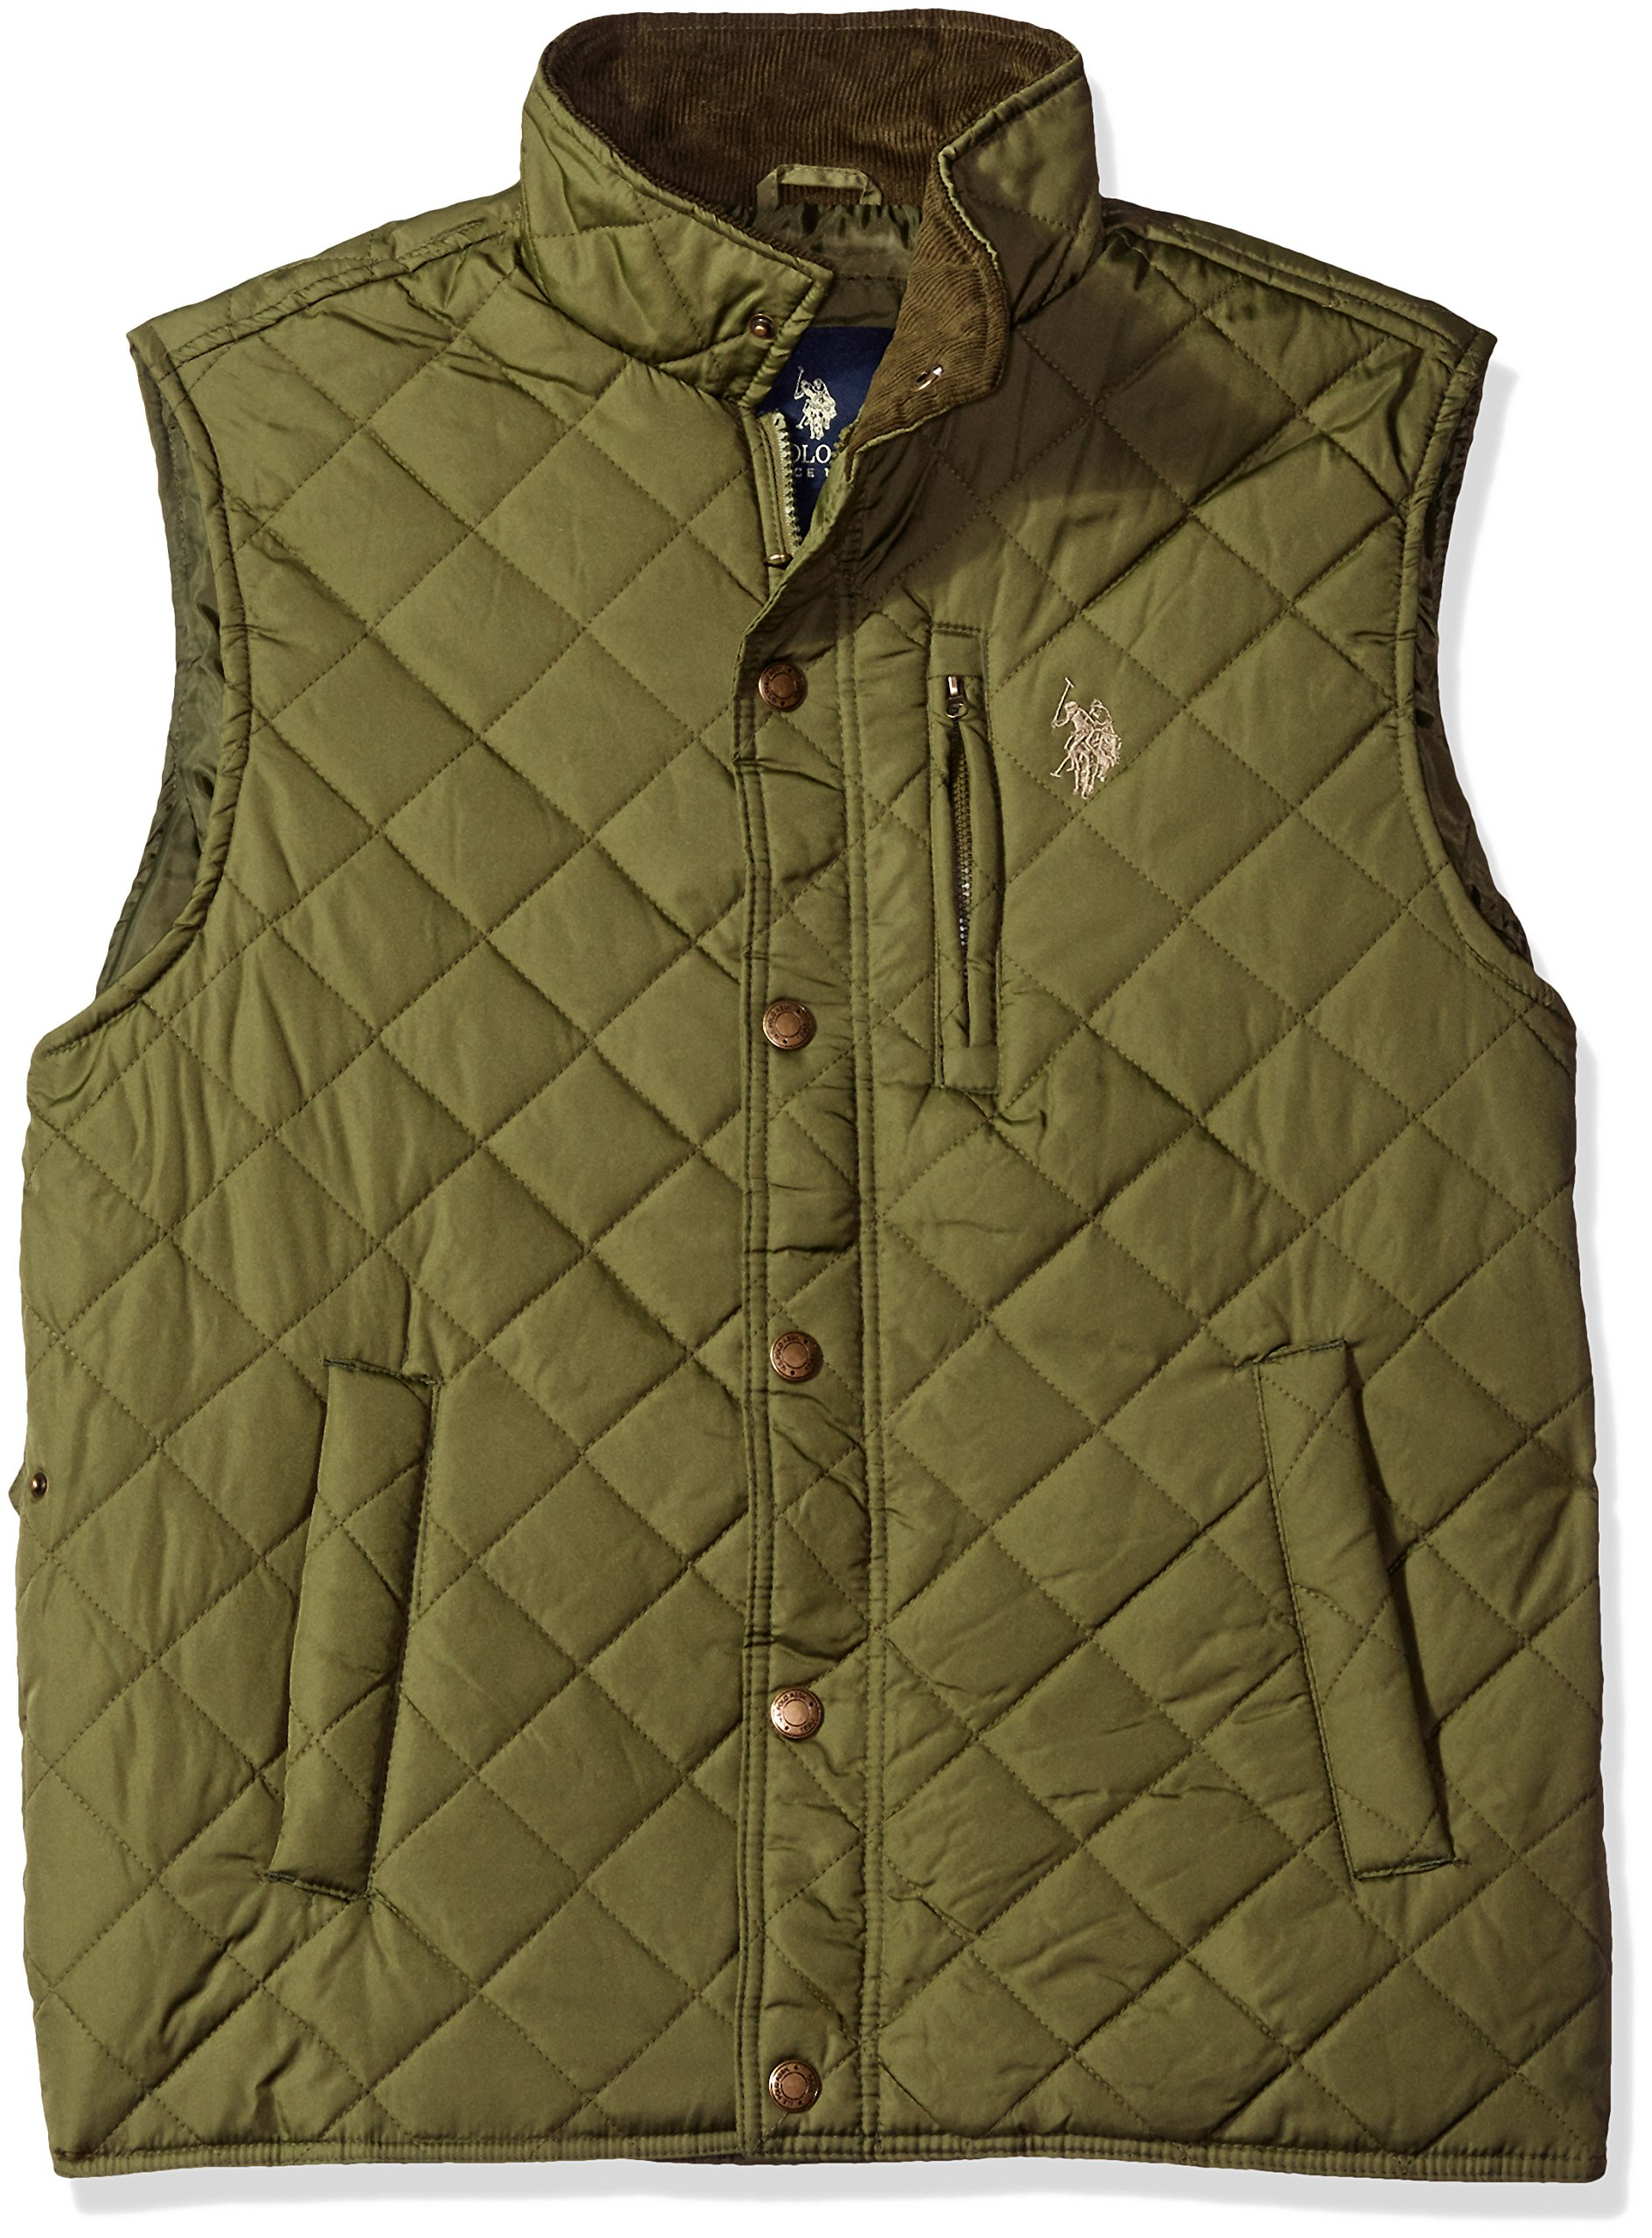 U.S. Polo Assn. Men's Lightweight Puffer Vest, Army Green-Ghmh, L by U.S. Polo Assn.